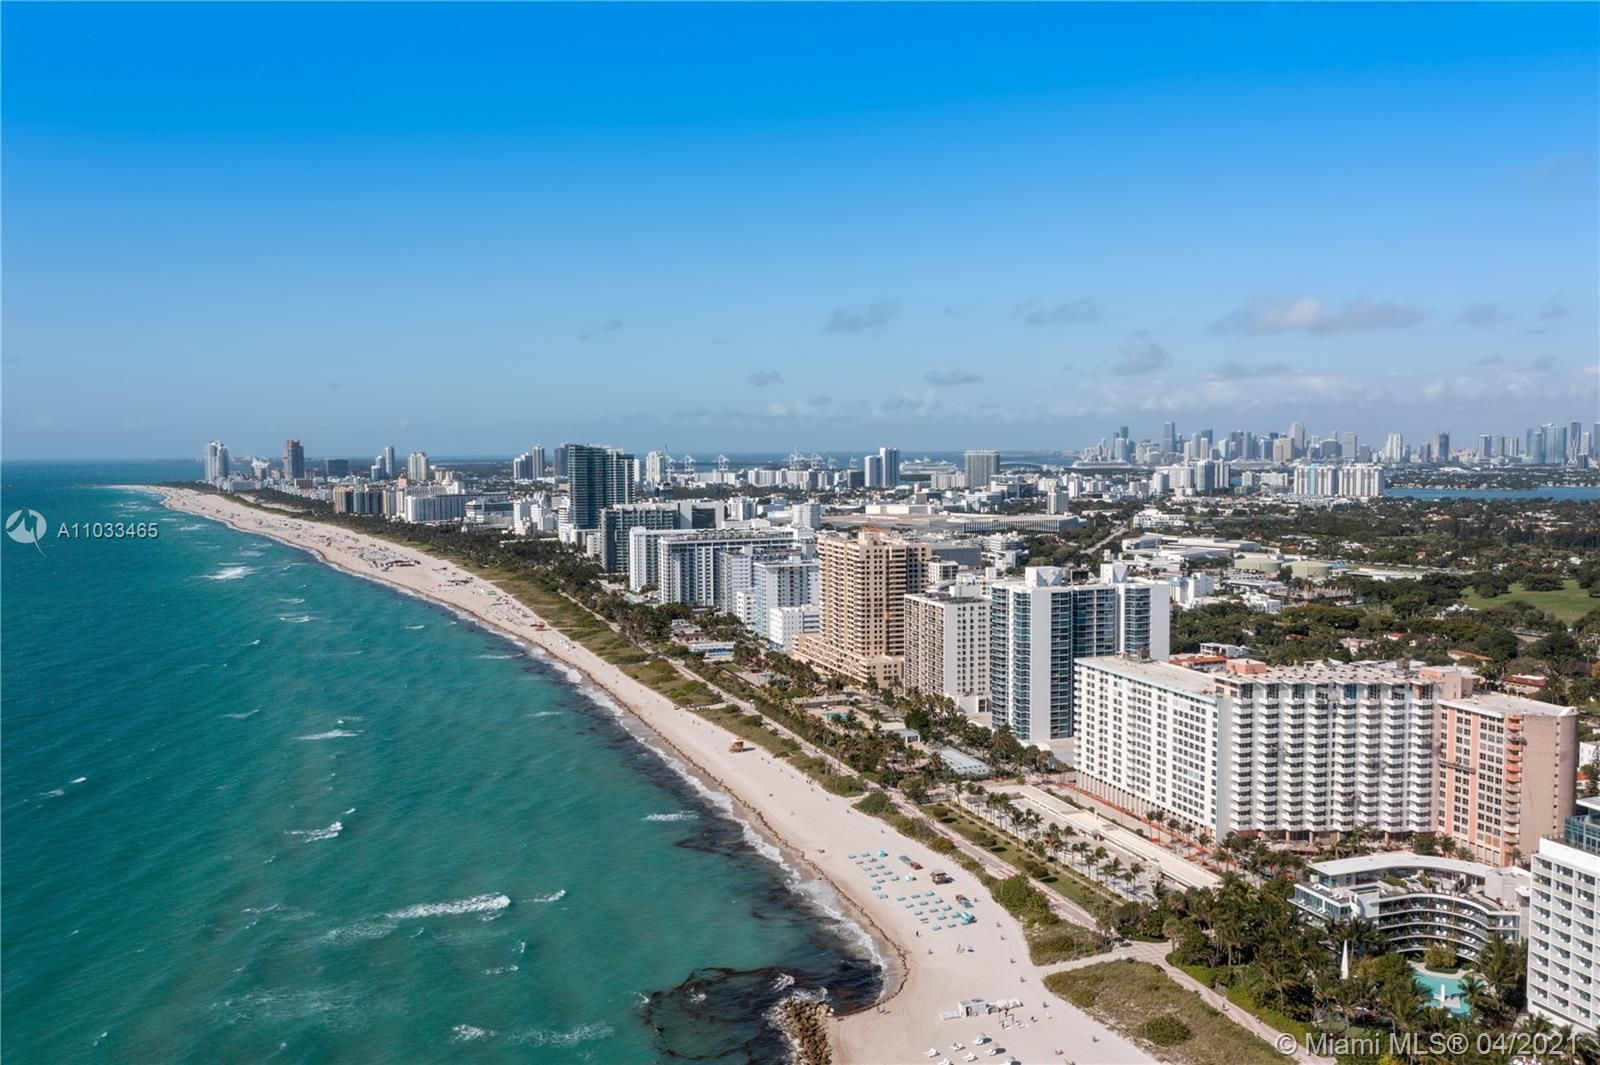 Beautifully renovated 2 bedroom/2 bath beachfront condo with turquoise ocean views from every room.